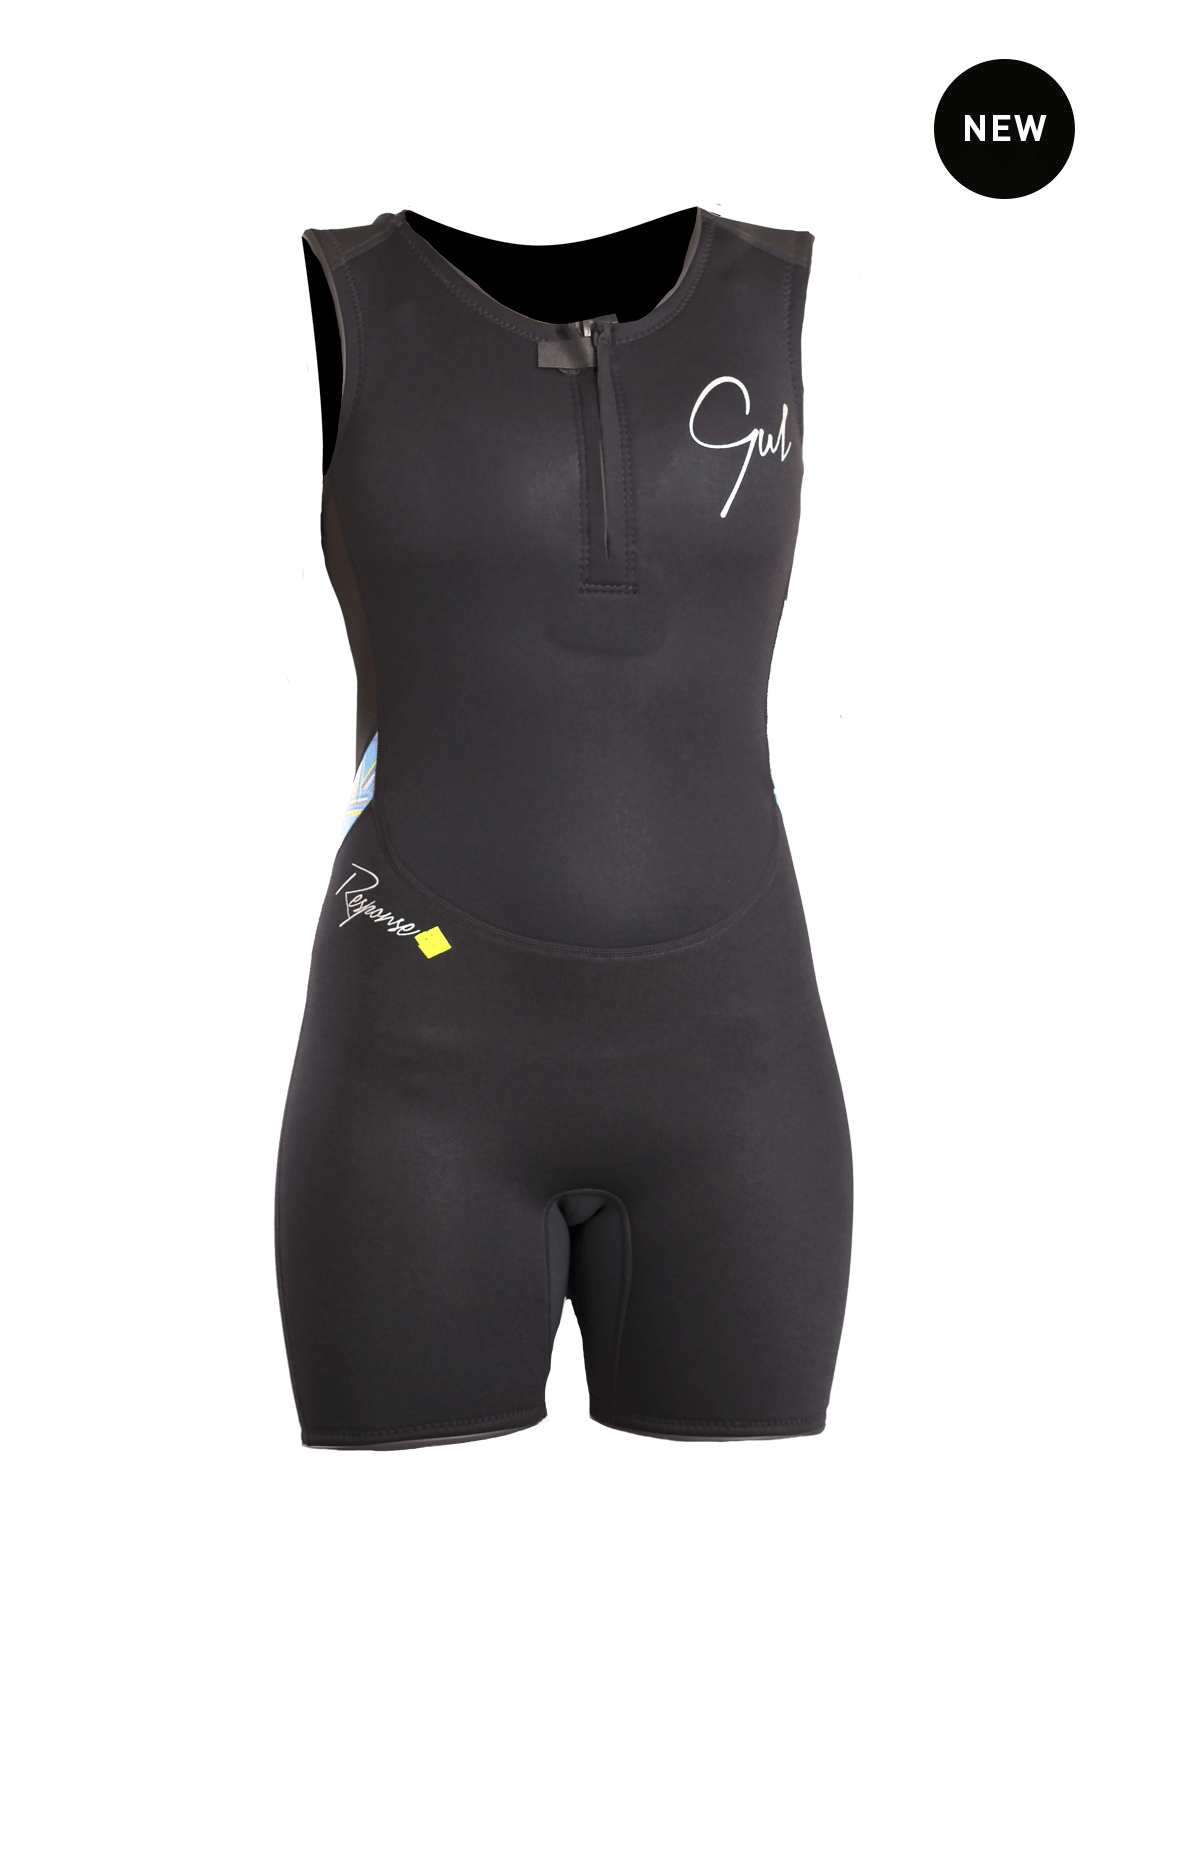 Gul Response Ladies 3/2mm Flatlock Short John Wetsuit Re5306-B4